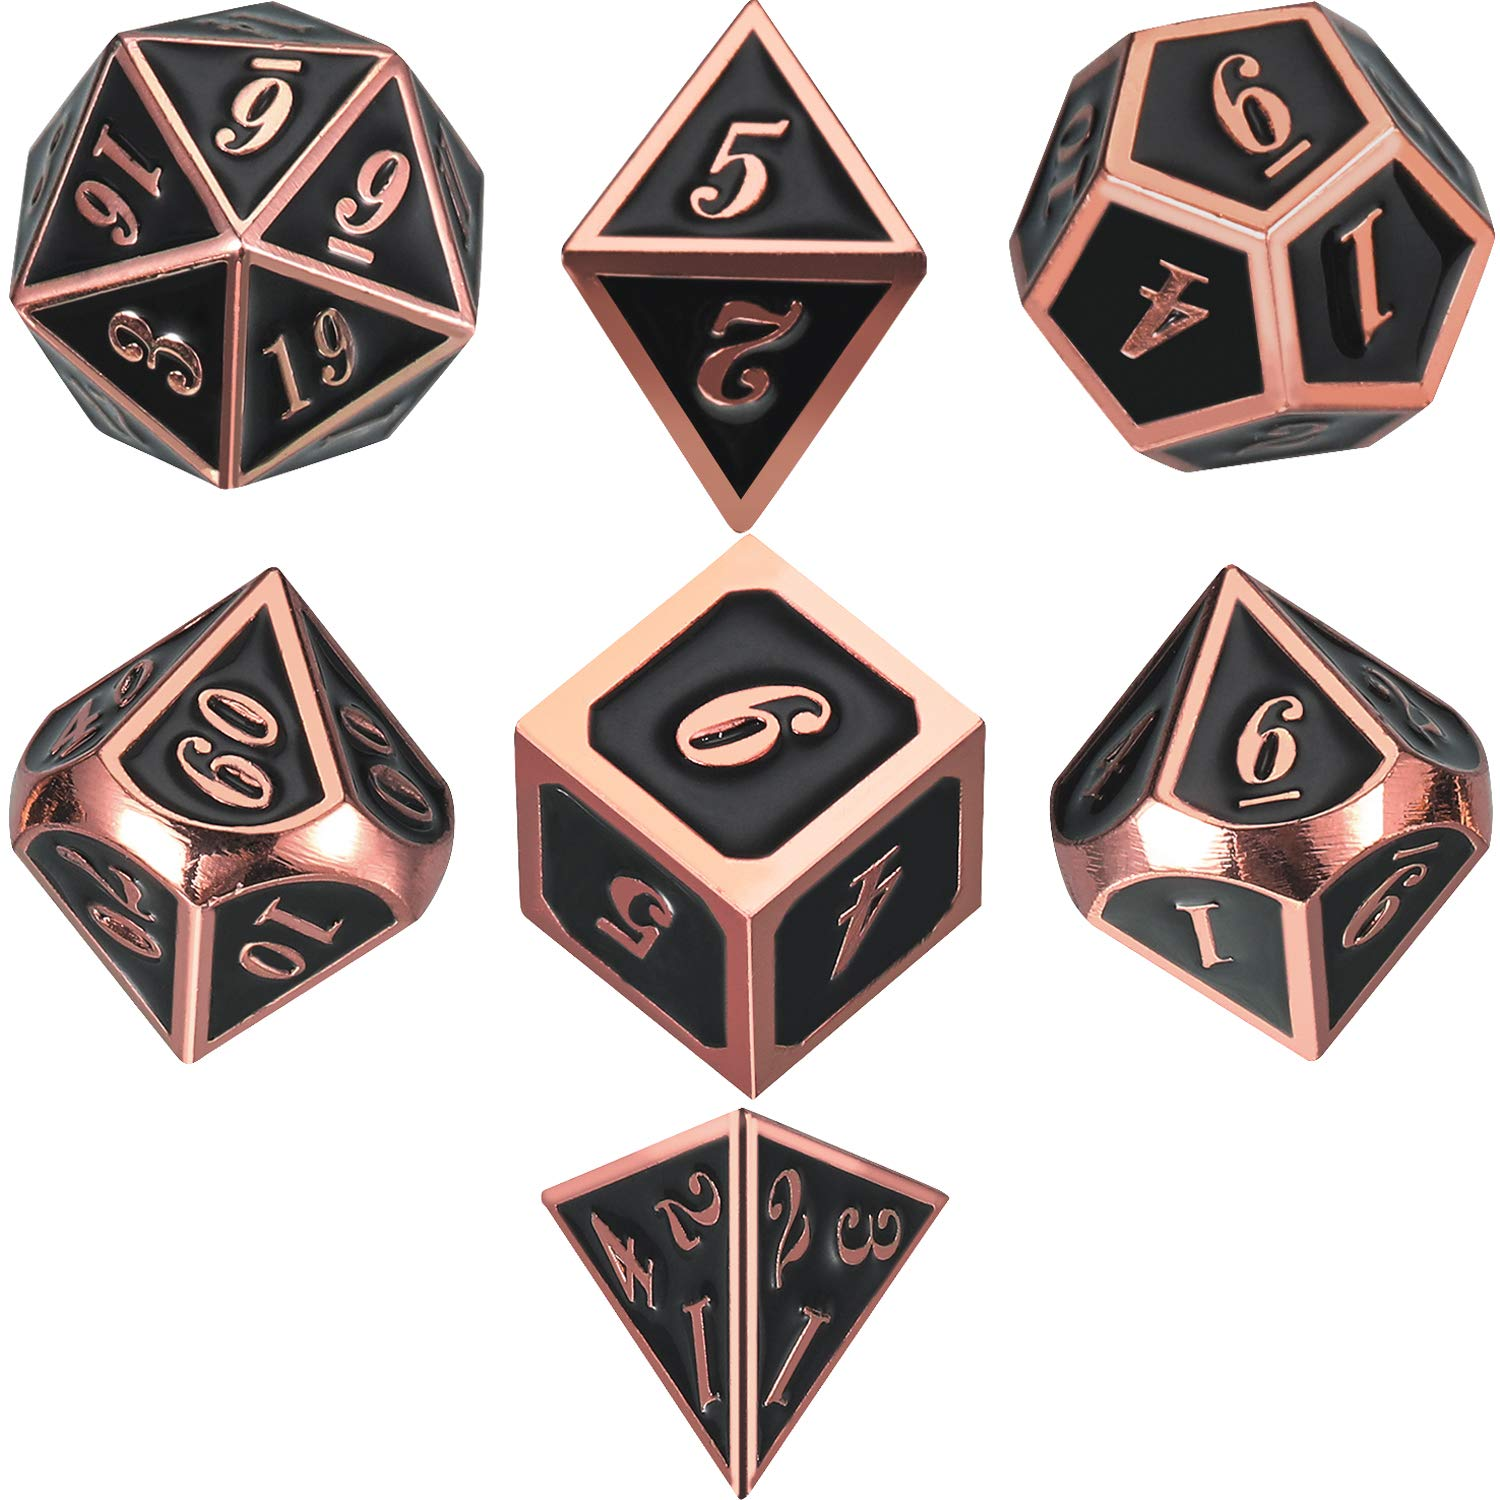 TecUnite 7 Die Metal Polyhedral Dice Set DND Role Playing Game Dice Set with Storage Bag for RPG Dungeons and Dragons D&D Math Teaching (Shiny Copper and Black)